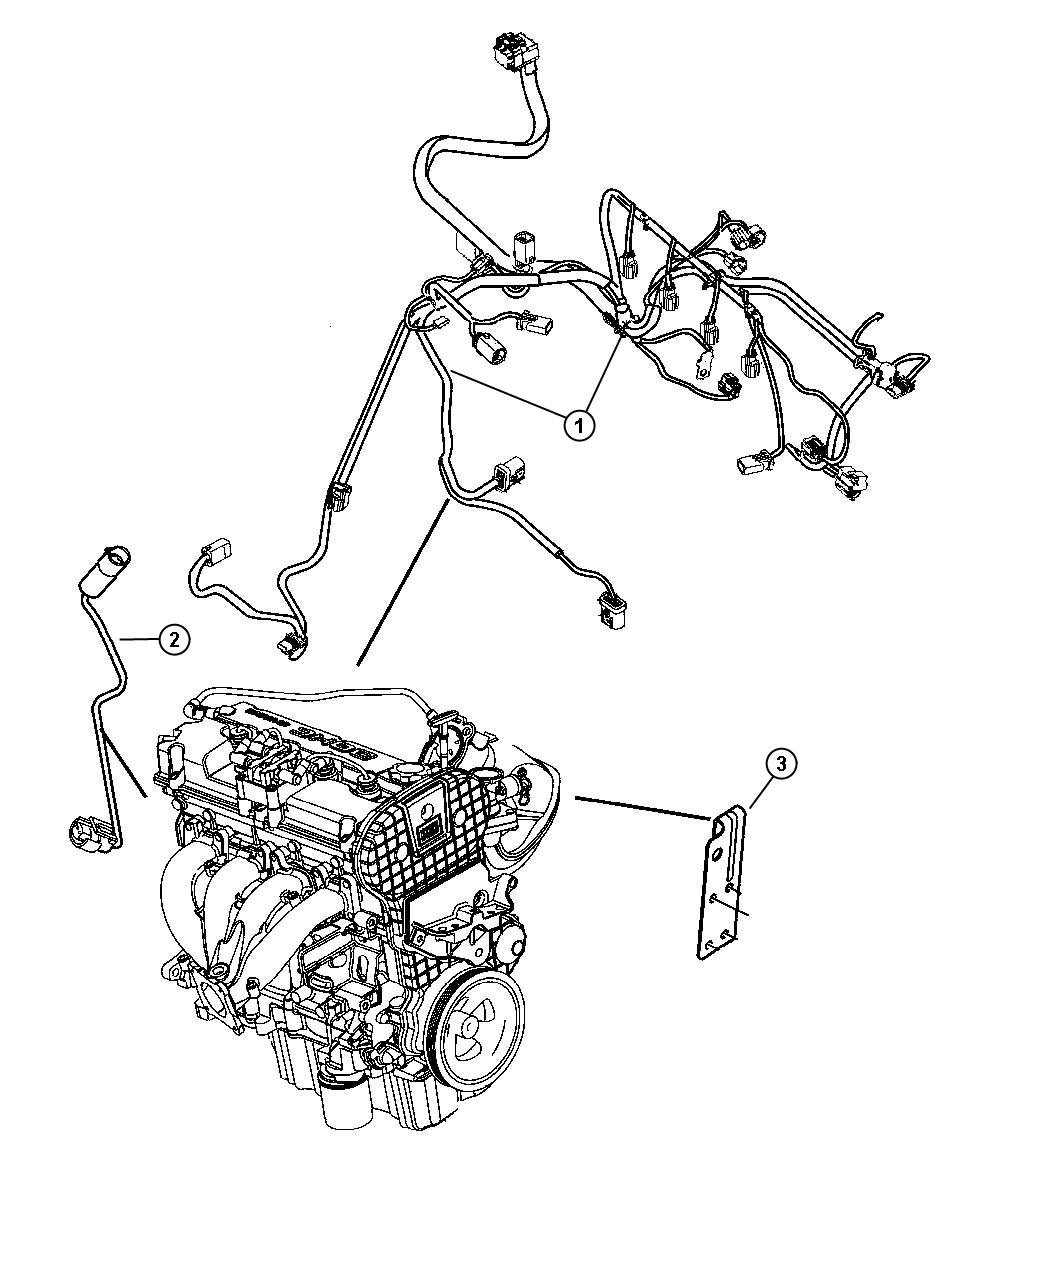 Chrysler Sebring Wiring Engine